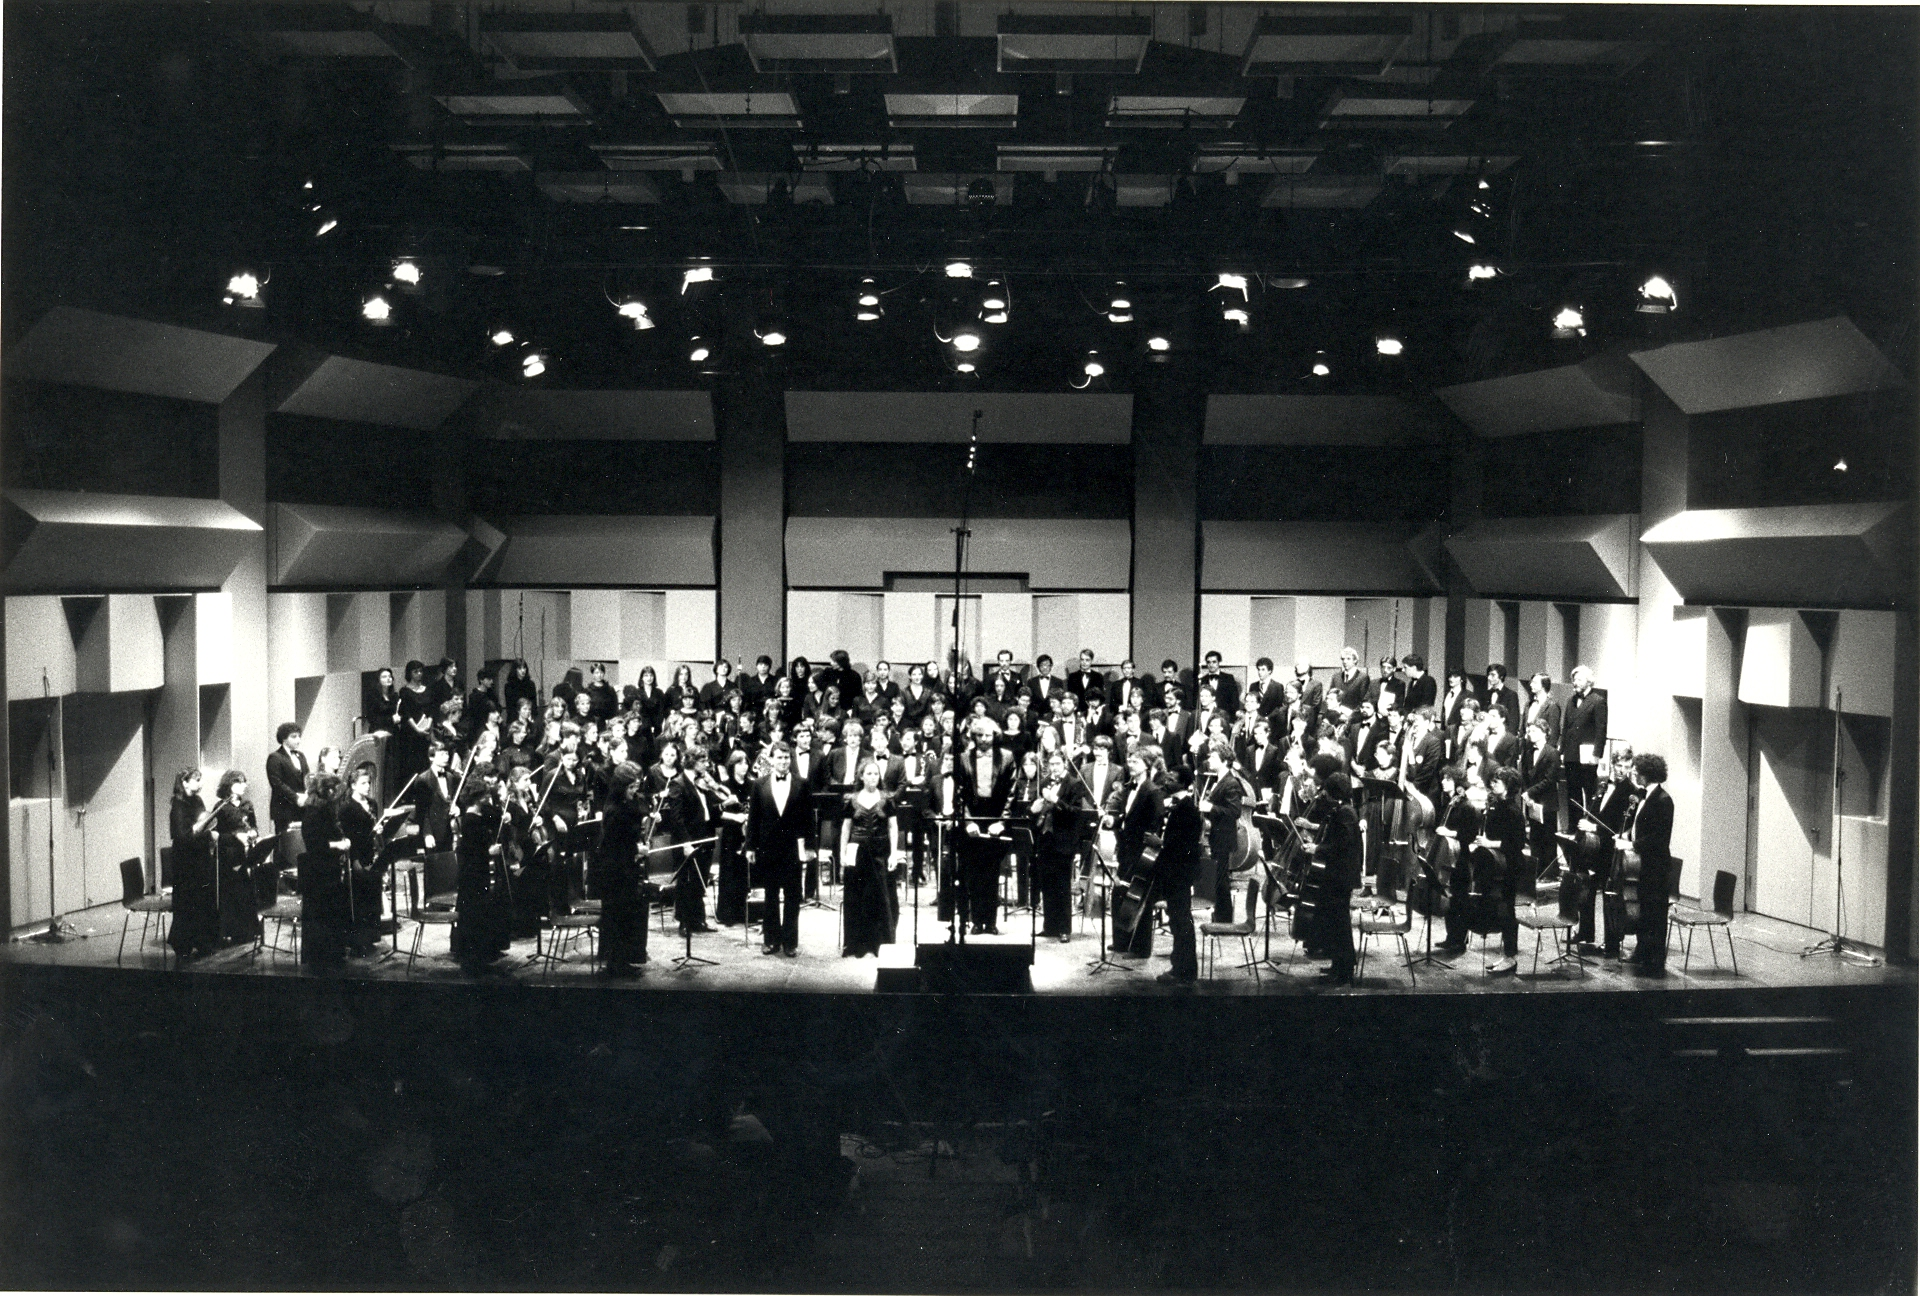 Photo credit: Schulich School of Music archives